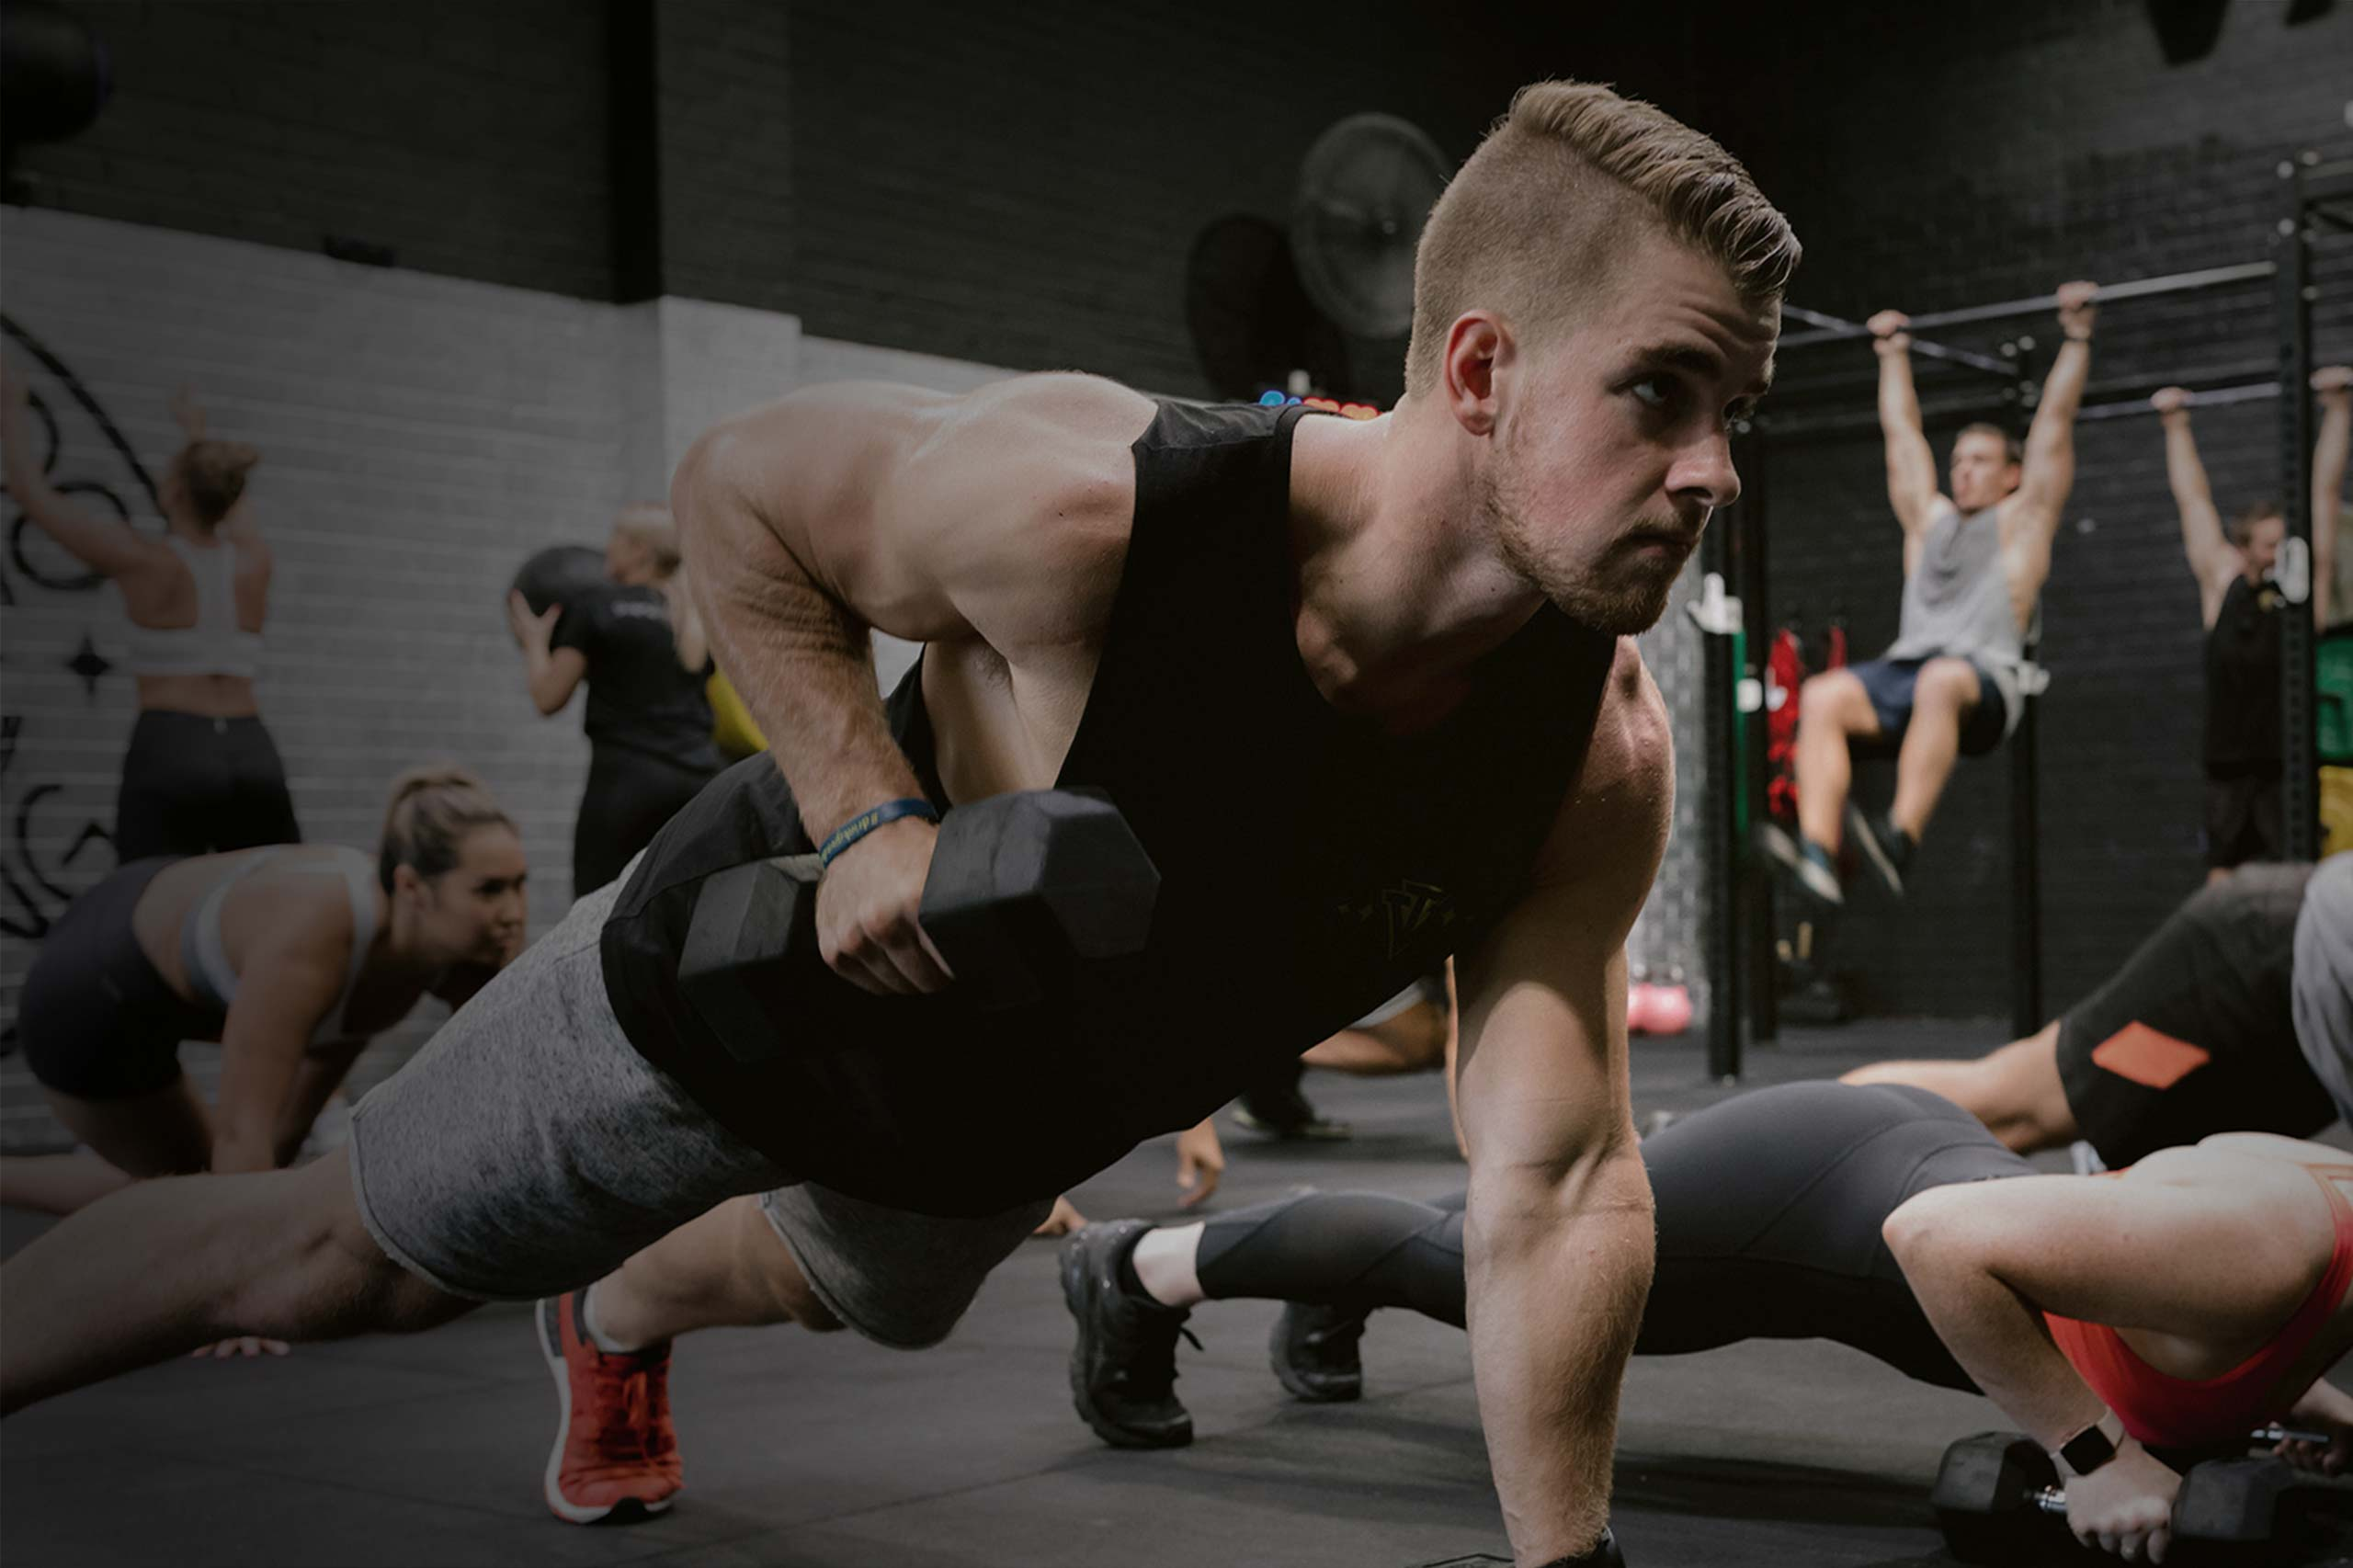 male athlete lifting dumbbells in group training class